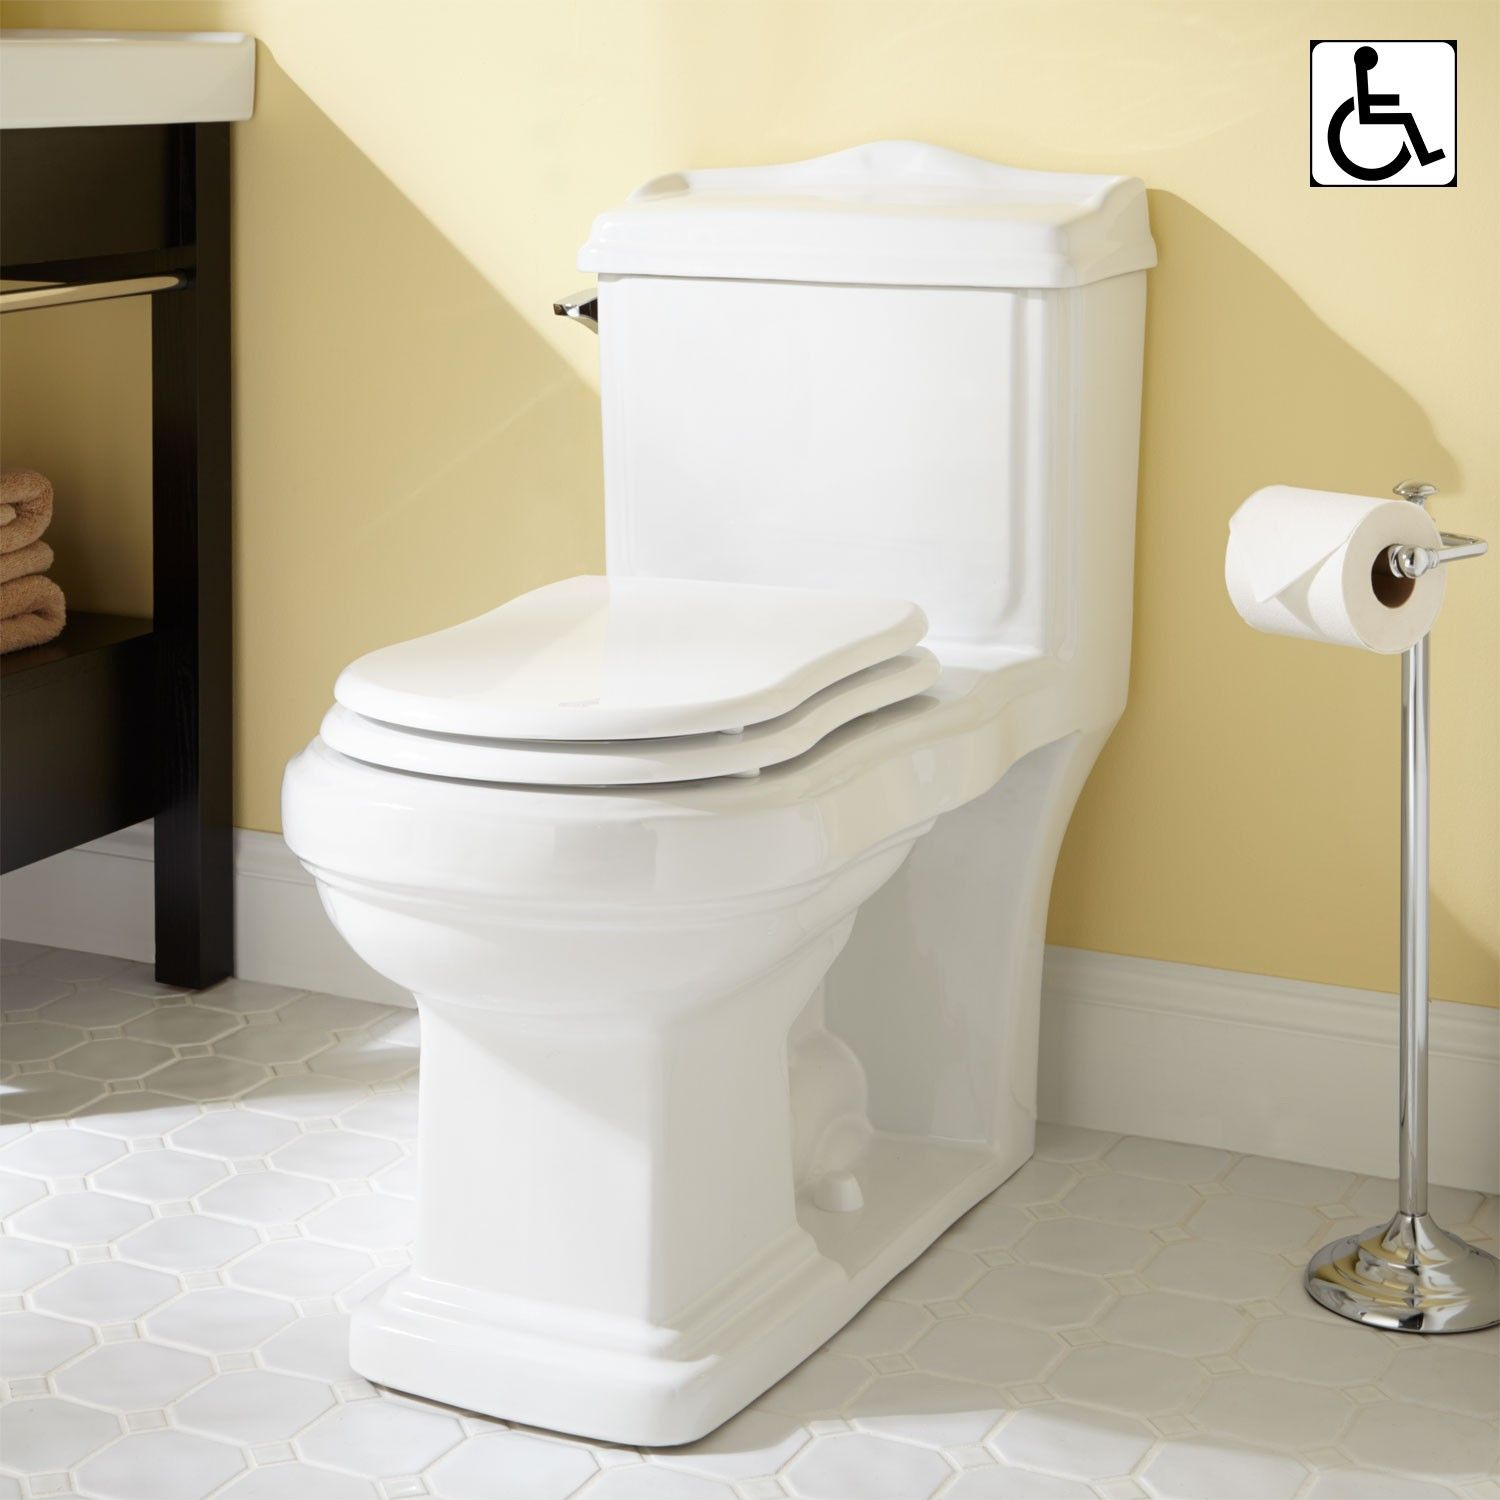 Scot Siphonic One Piece Elongated Toilet Ada Compliant Toilets